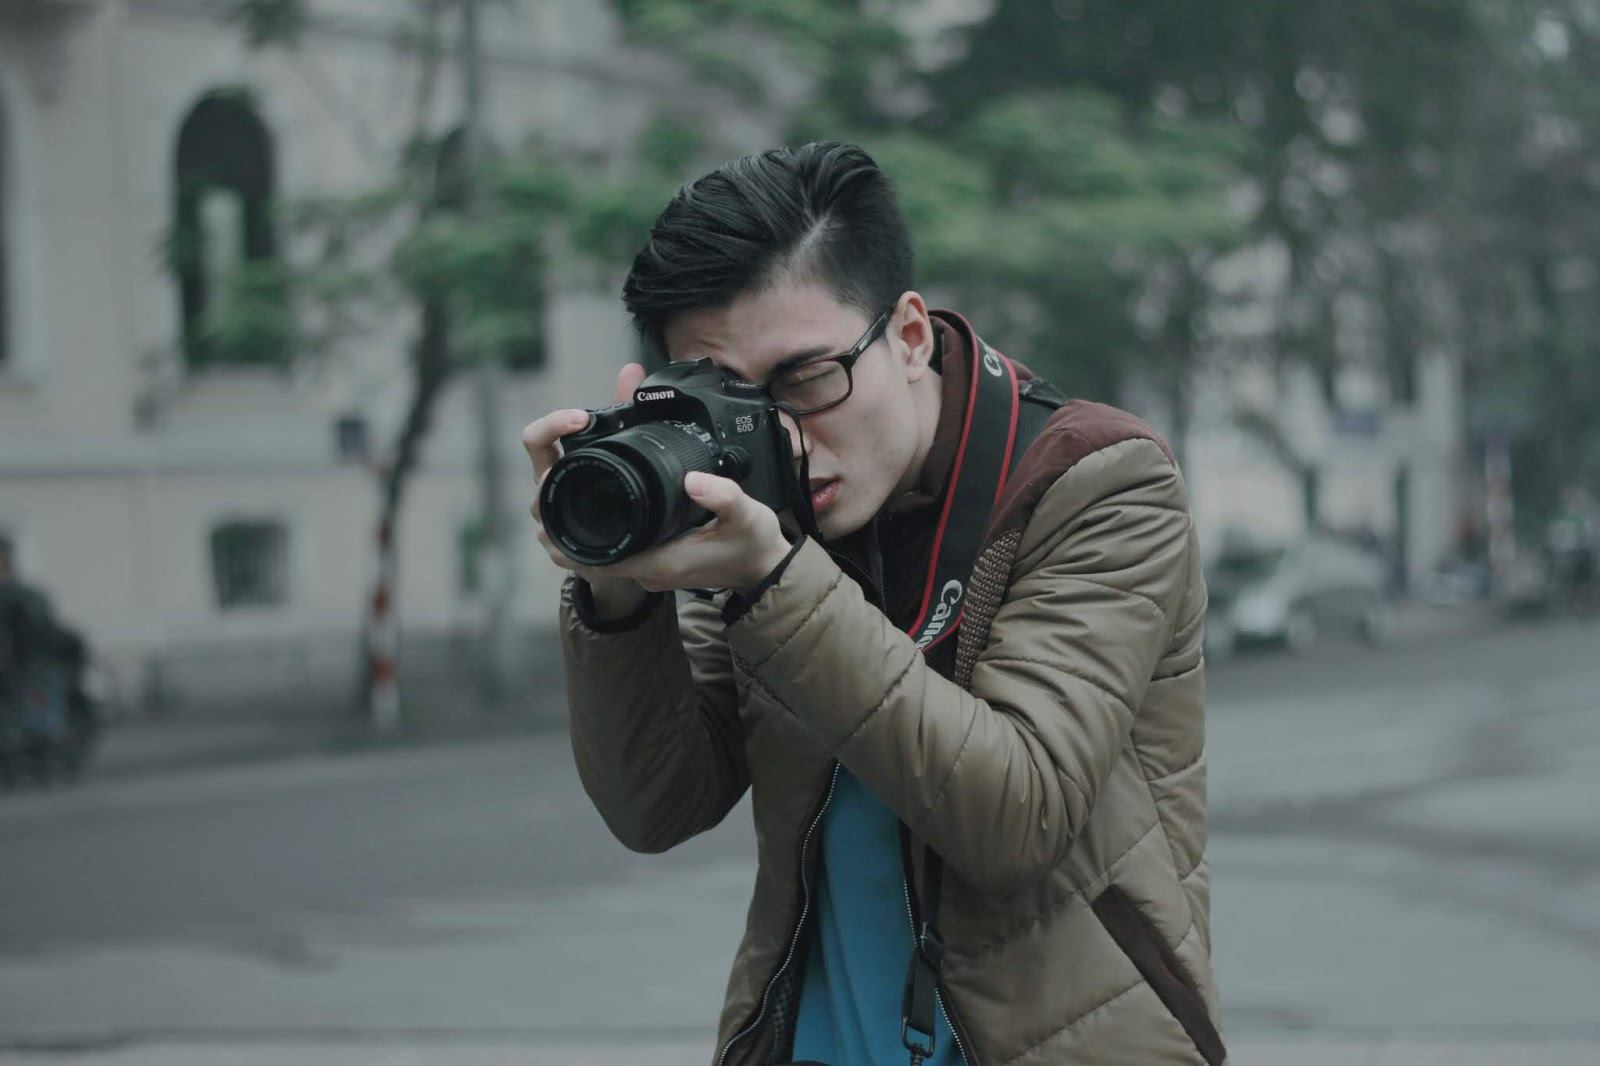 young man faces the camera. he has a camera and is taking a picture of something off-screen for blog post about war journalism movies